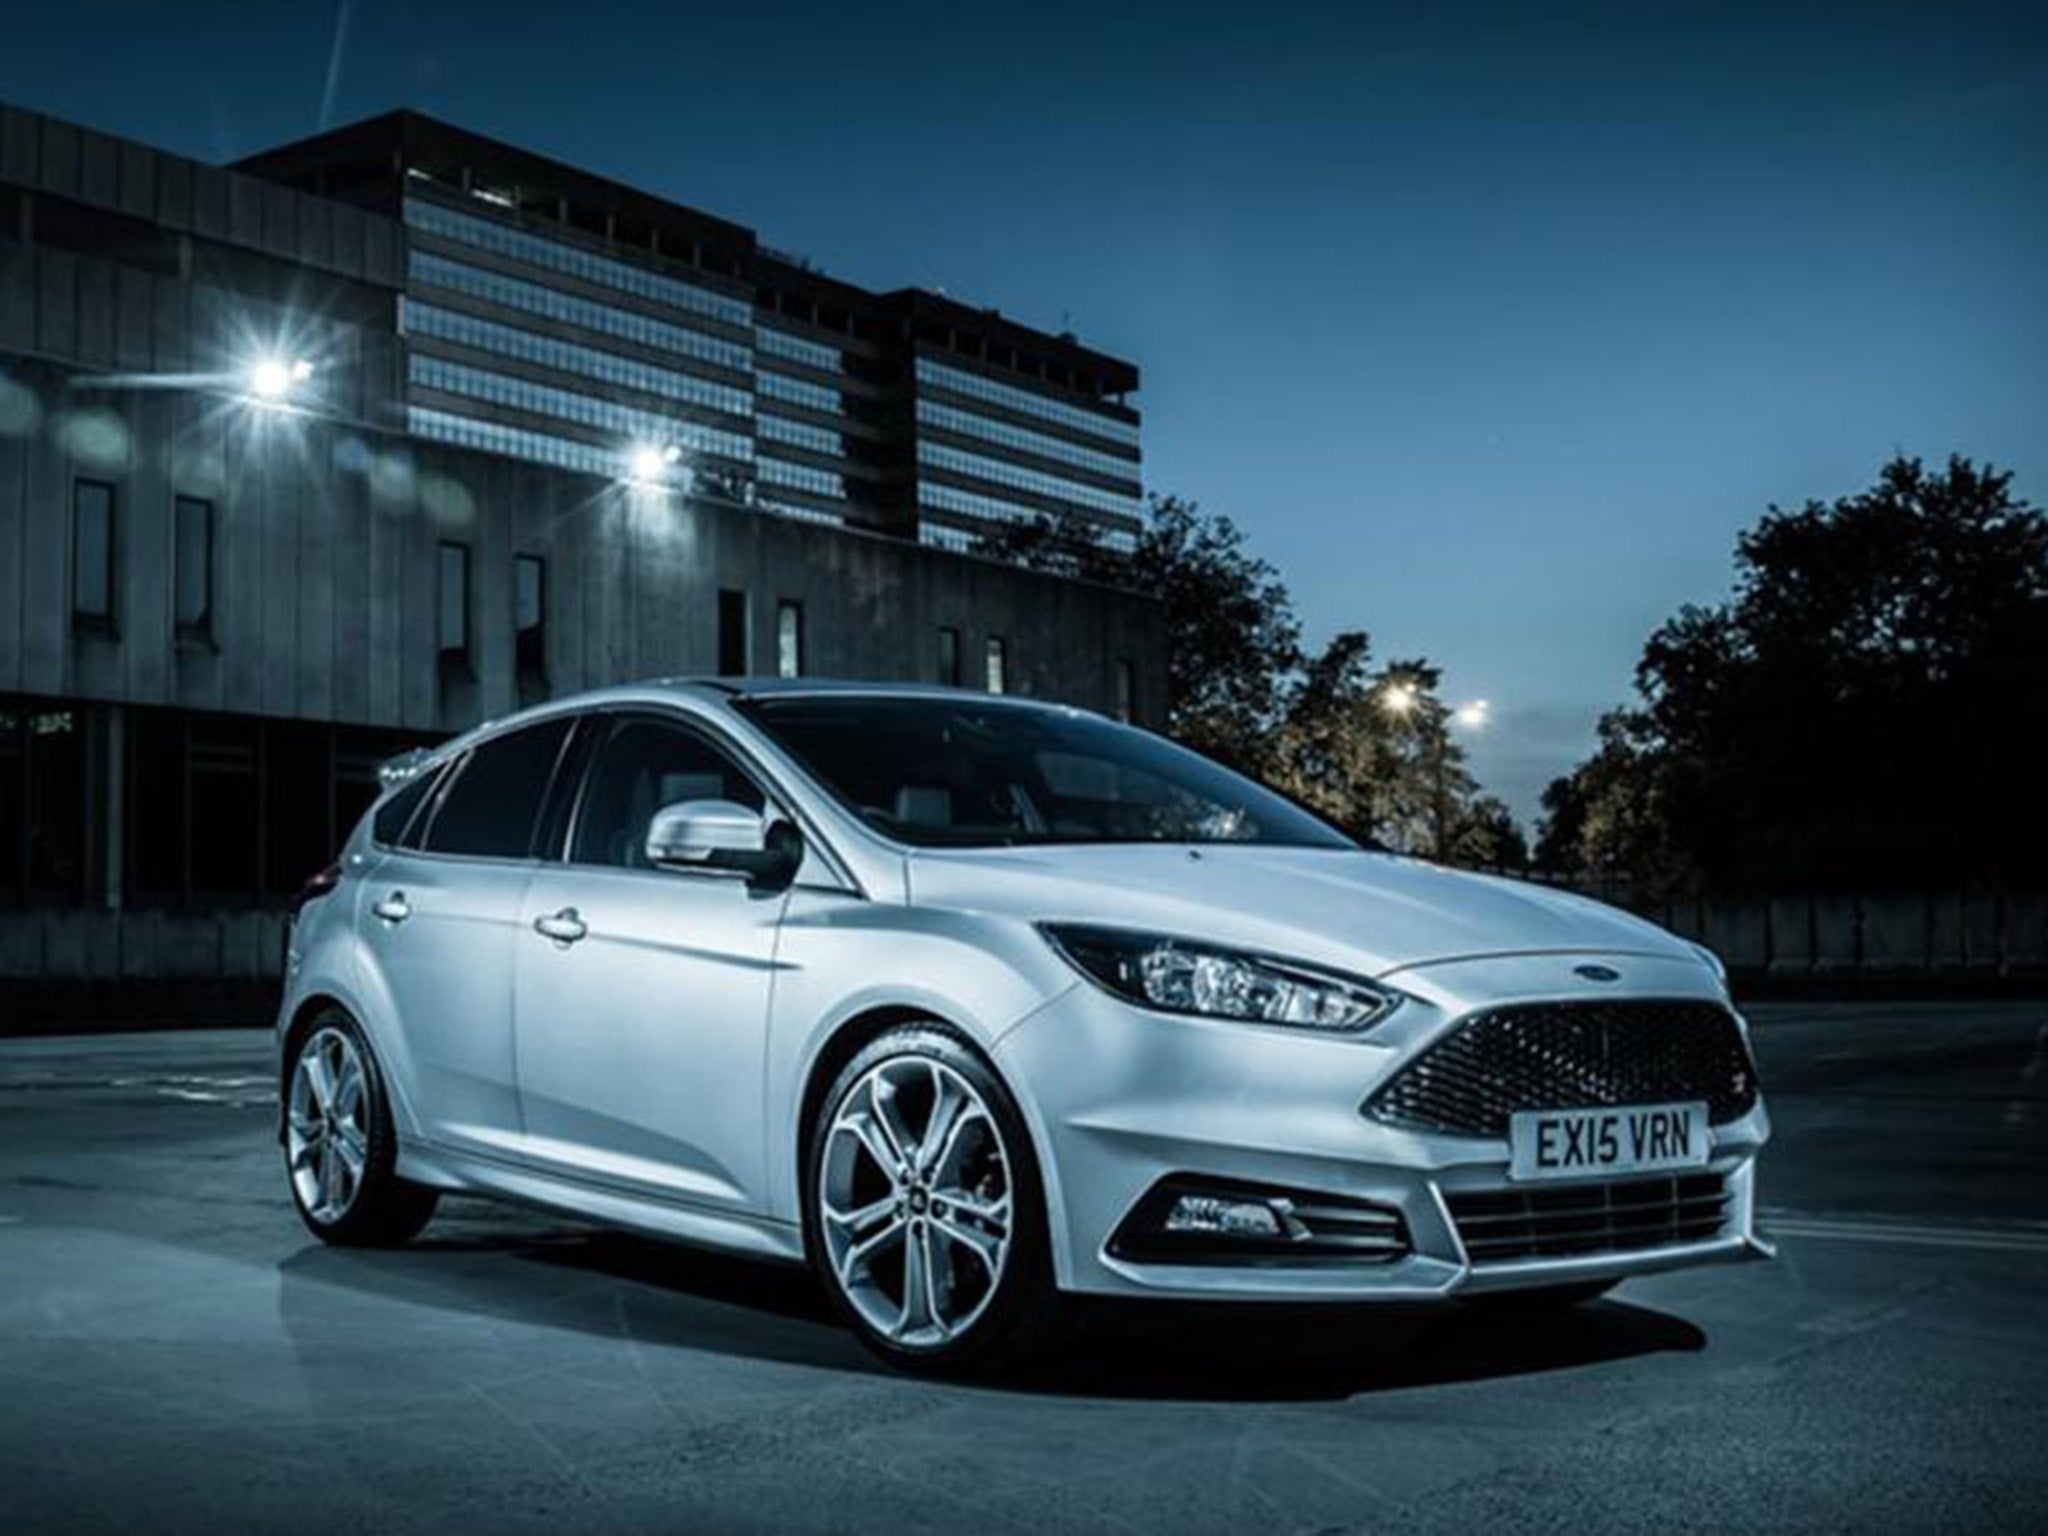 ford focus st ford cranks it up with a new weapon in the hot hatch war the independent